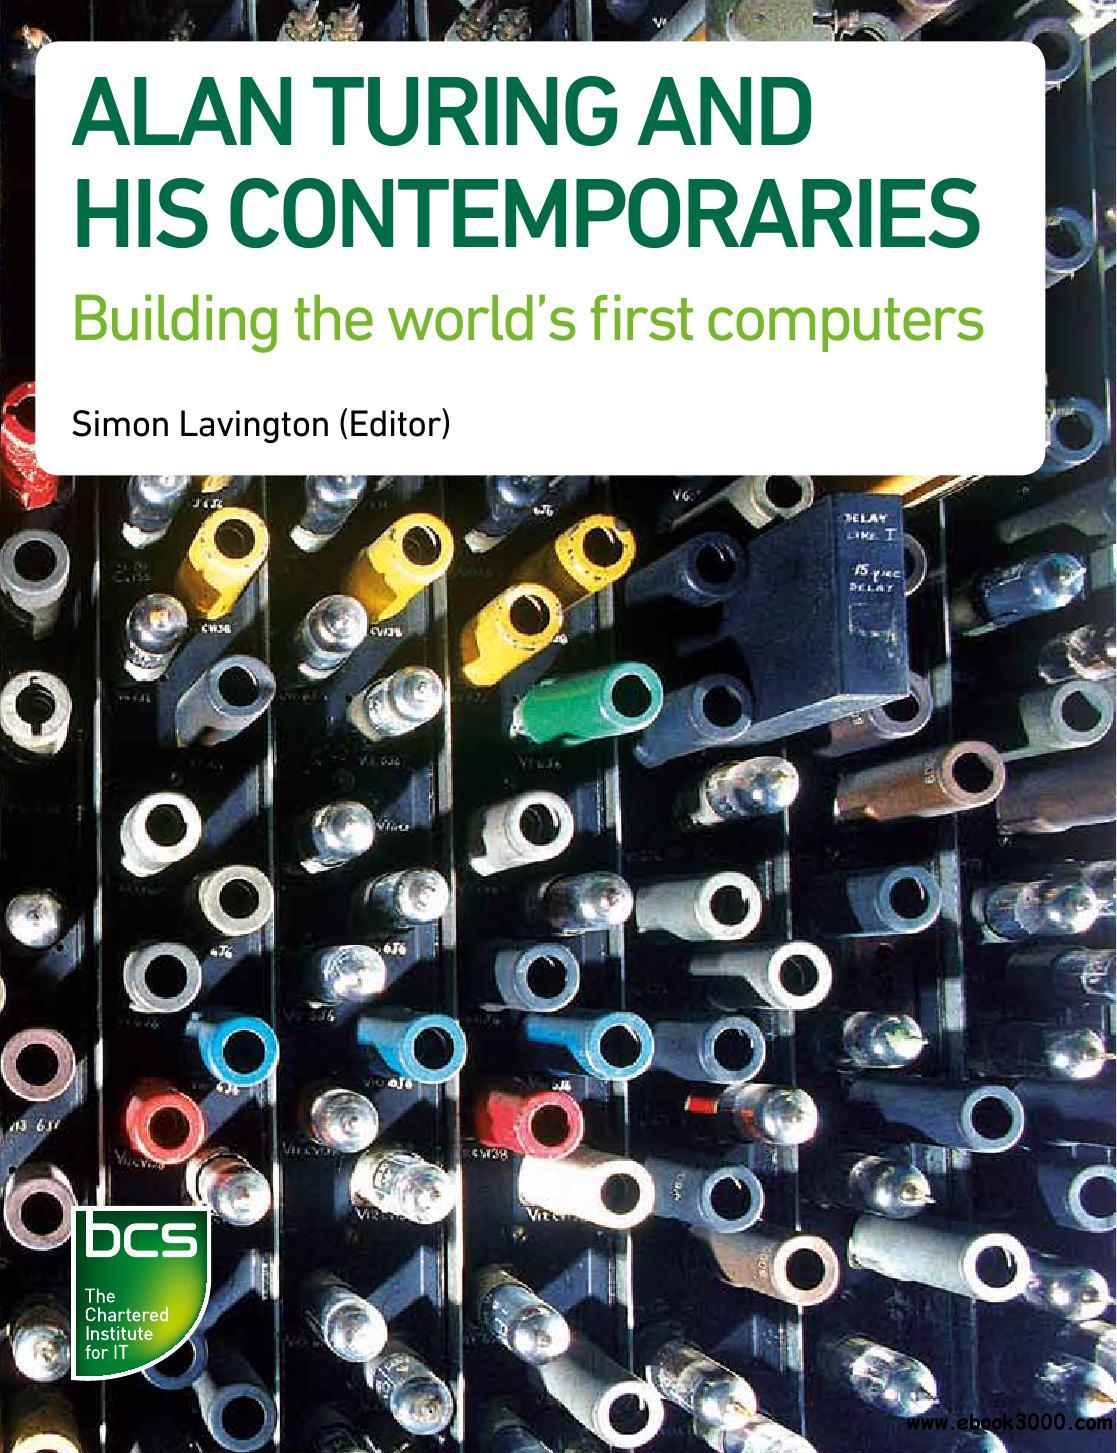 Alan Turing and His Contemporaries: Building the World's First Computers free download